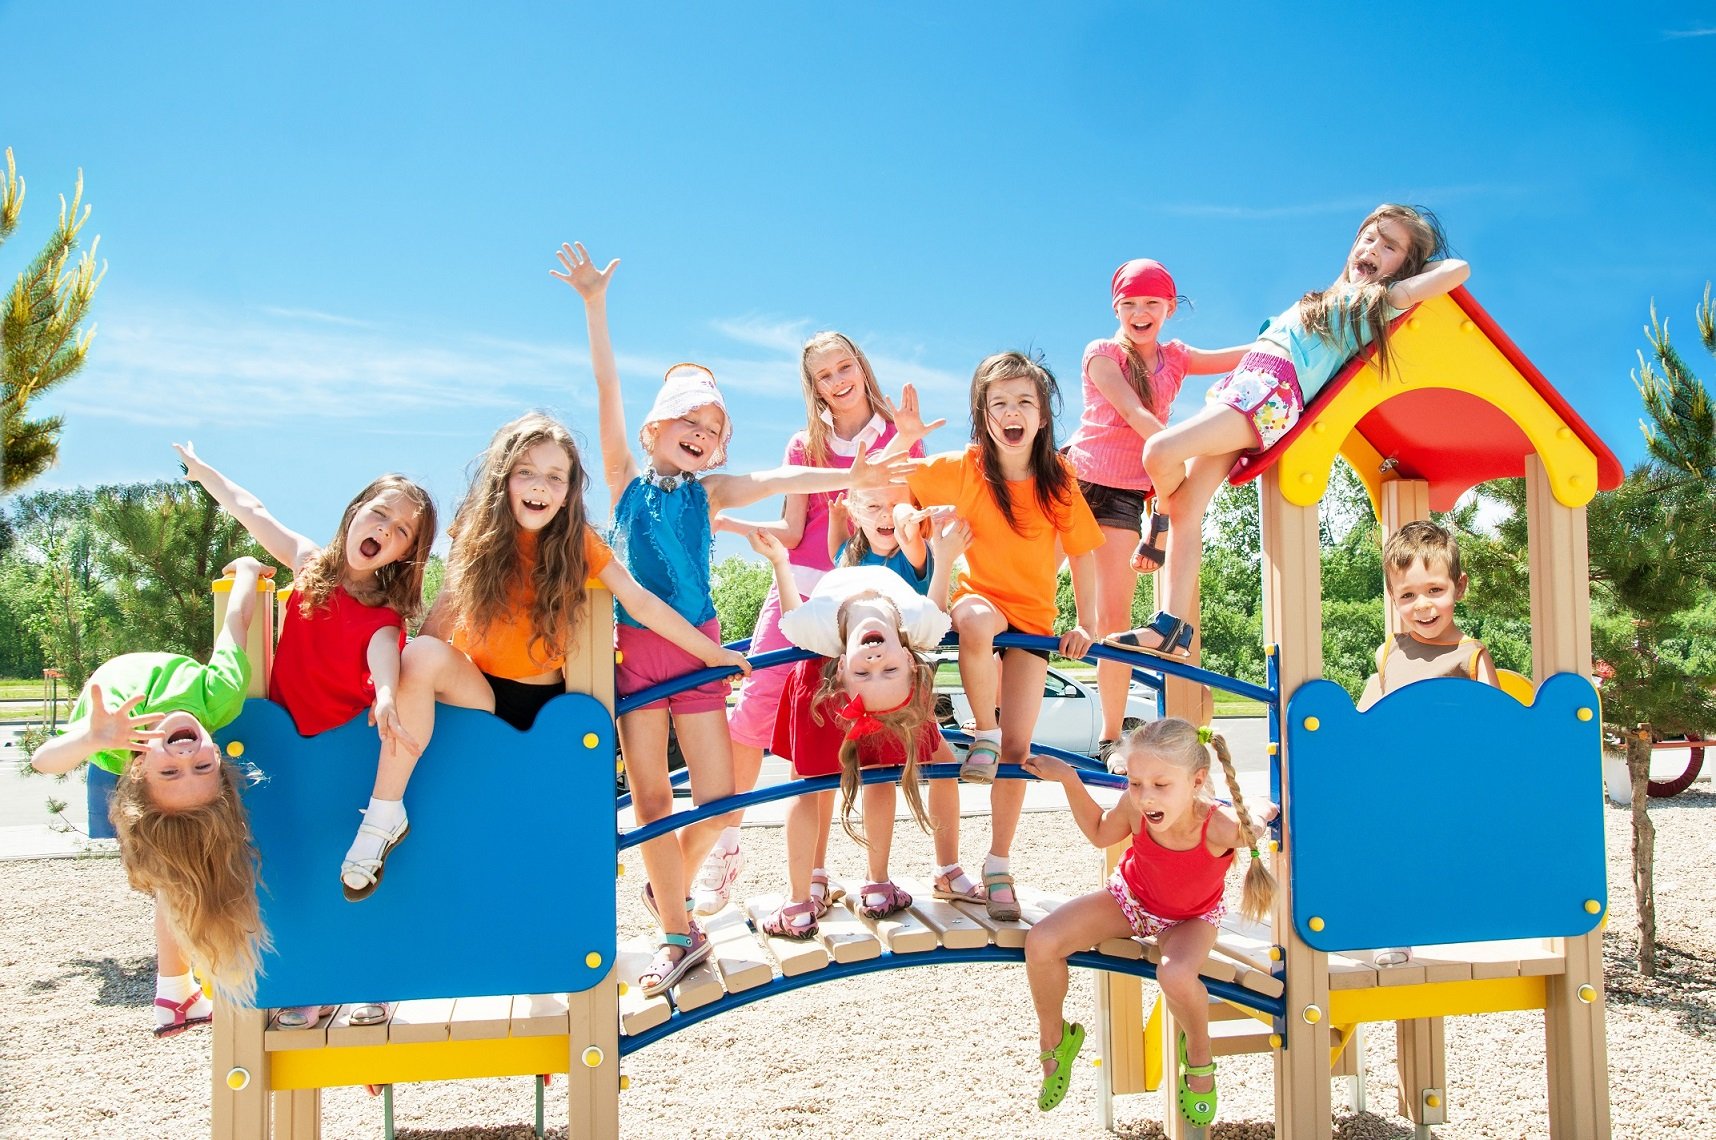 Image of happy kids playing on playground